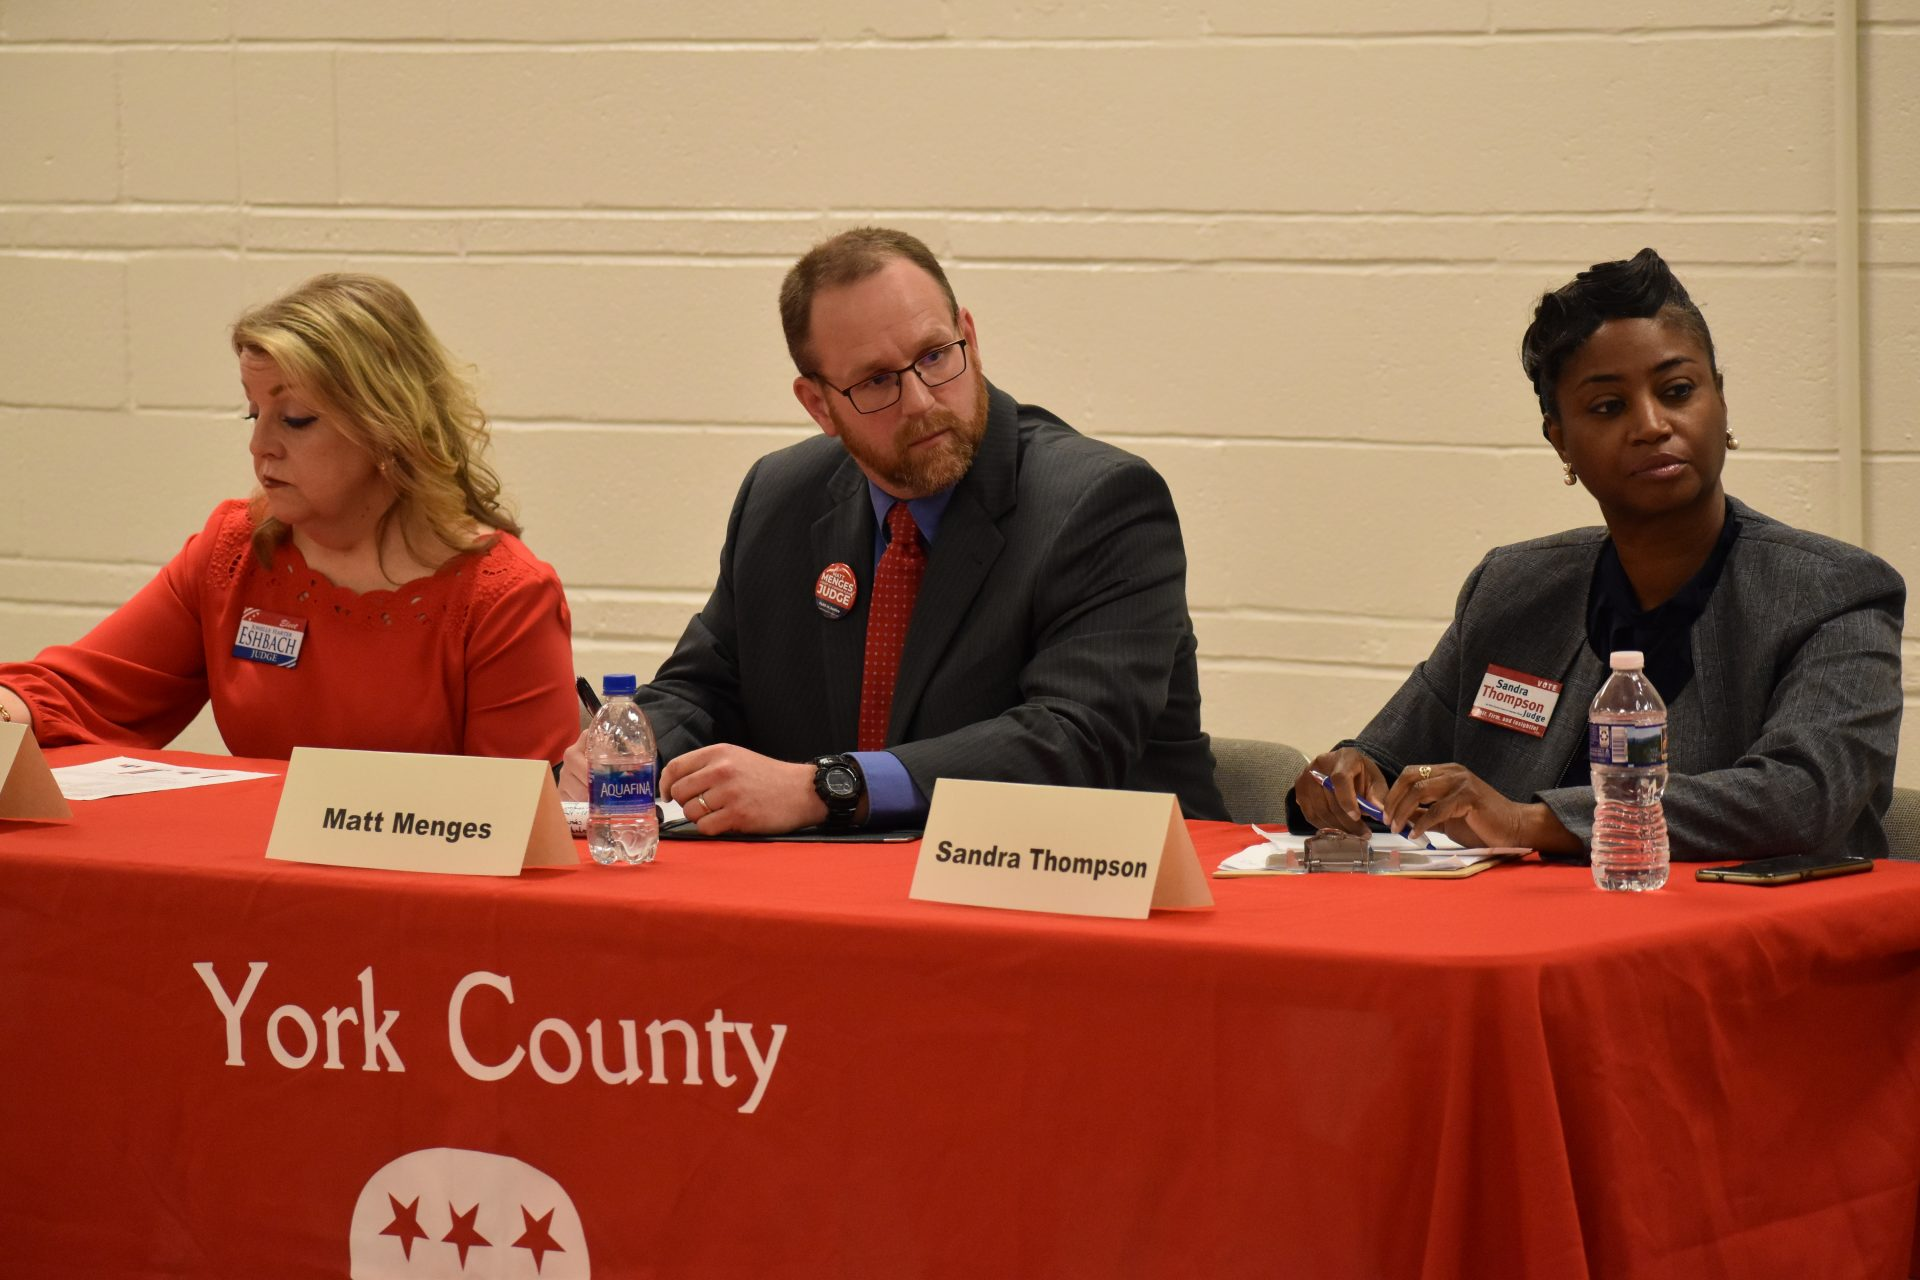 Three candidates for a seat on the York County Court of Common Pleas participate in a debate hosted by the Republican Club of York County on April 29, 2019. From left to right, they are Jonelle Eshbach, Matt Menges and Sandra Thompson.